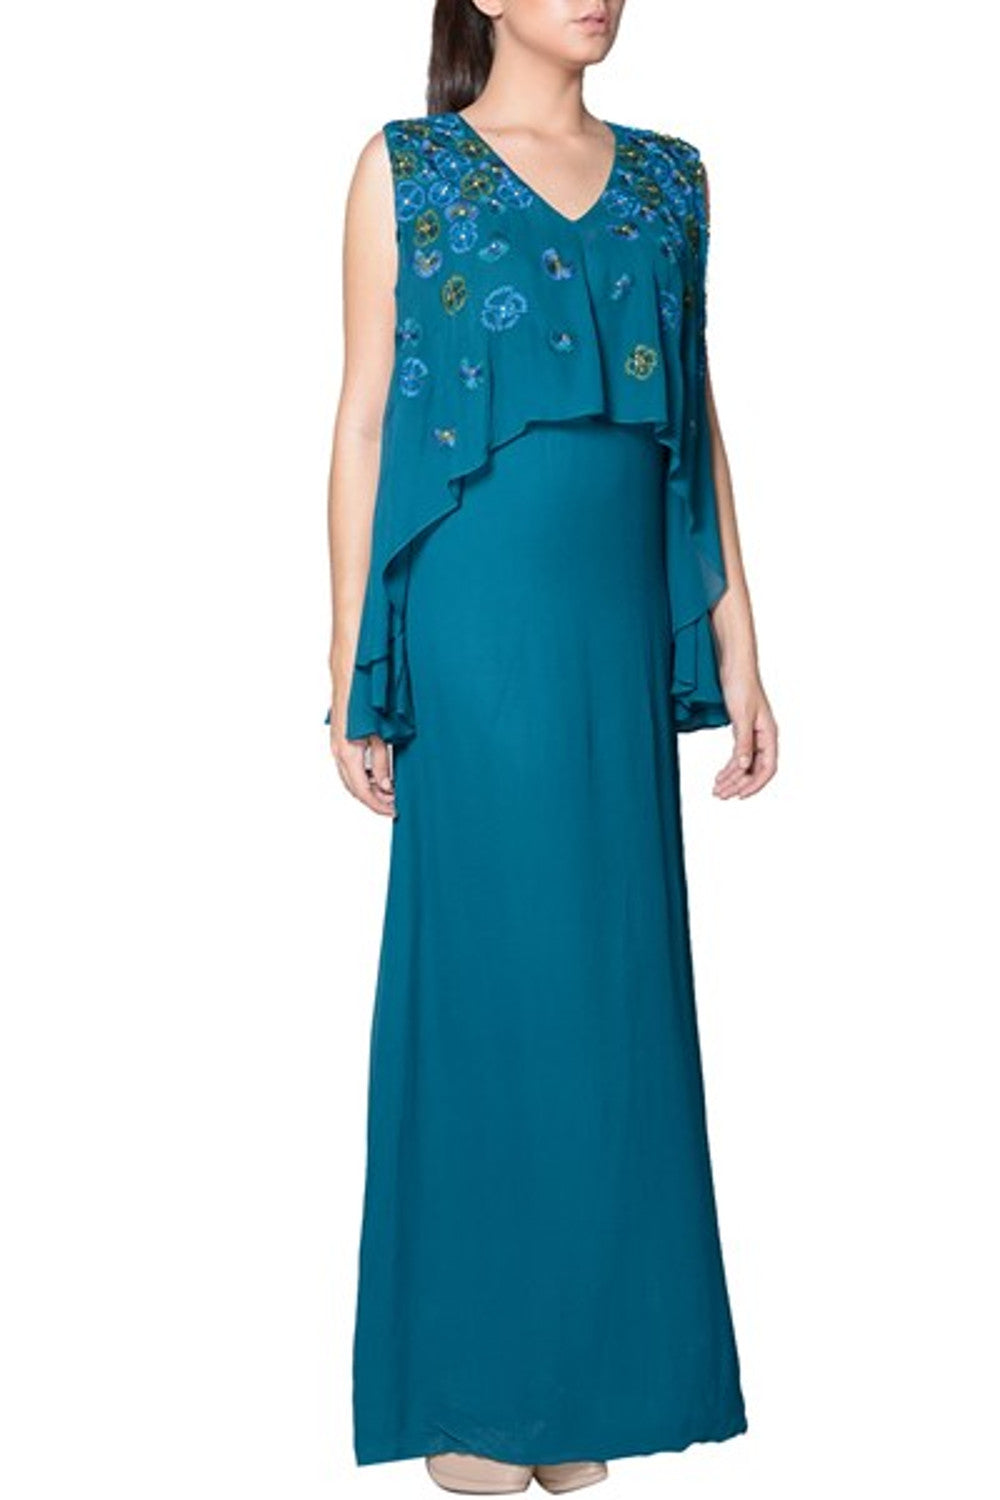 Mandira Wirk. Teal Thread Embroidered Cape Gown – Velvetry